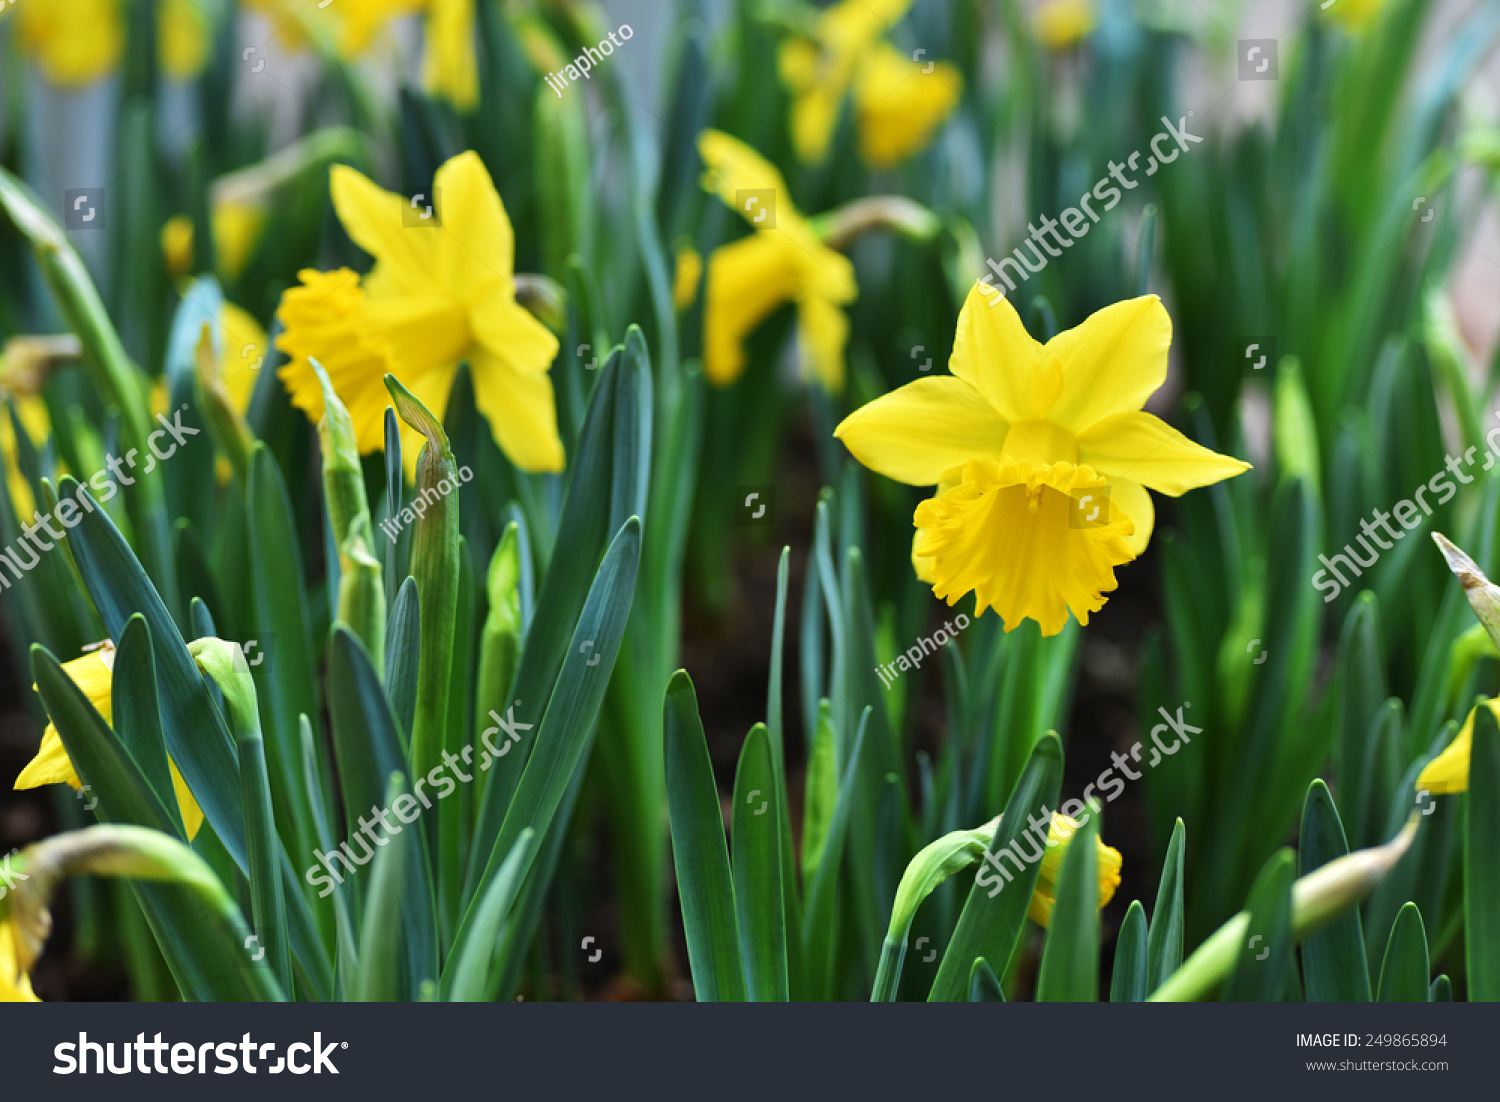 Daffodil Narcissus Yellow Flower In Bloom In Spring Ez Canvas